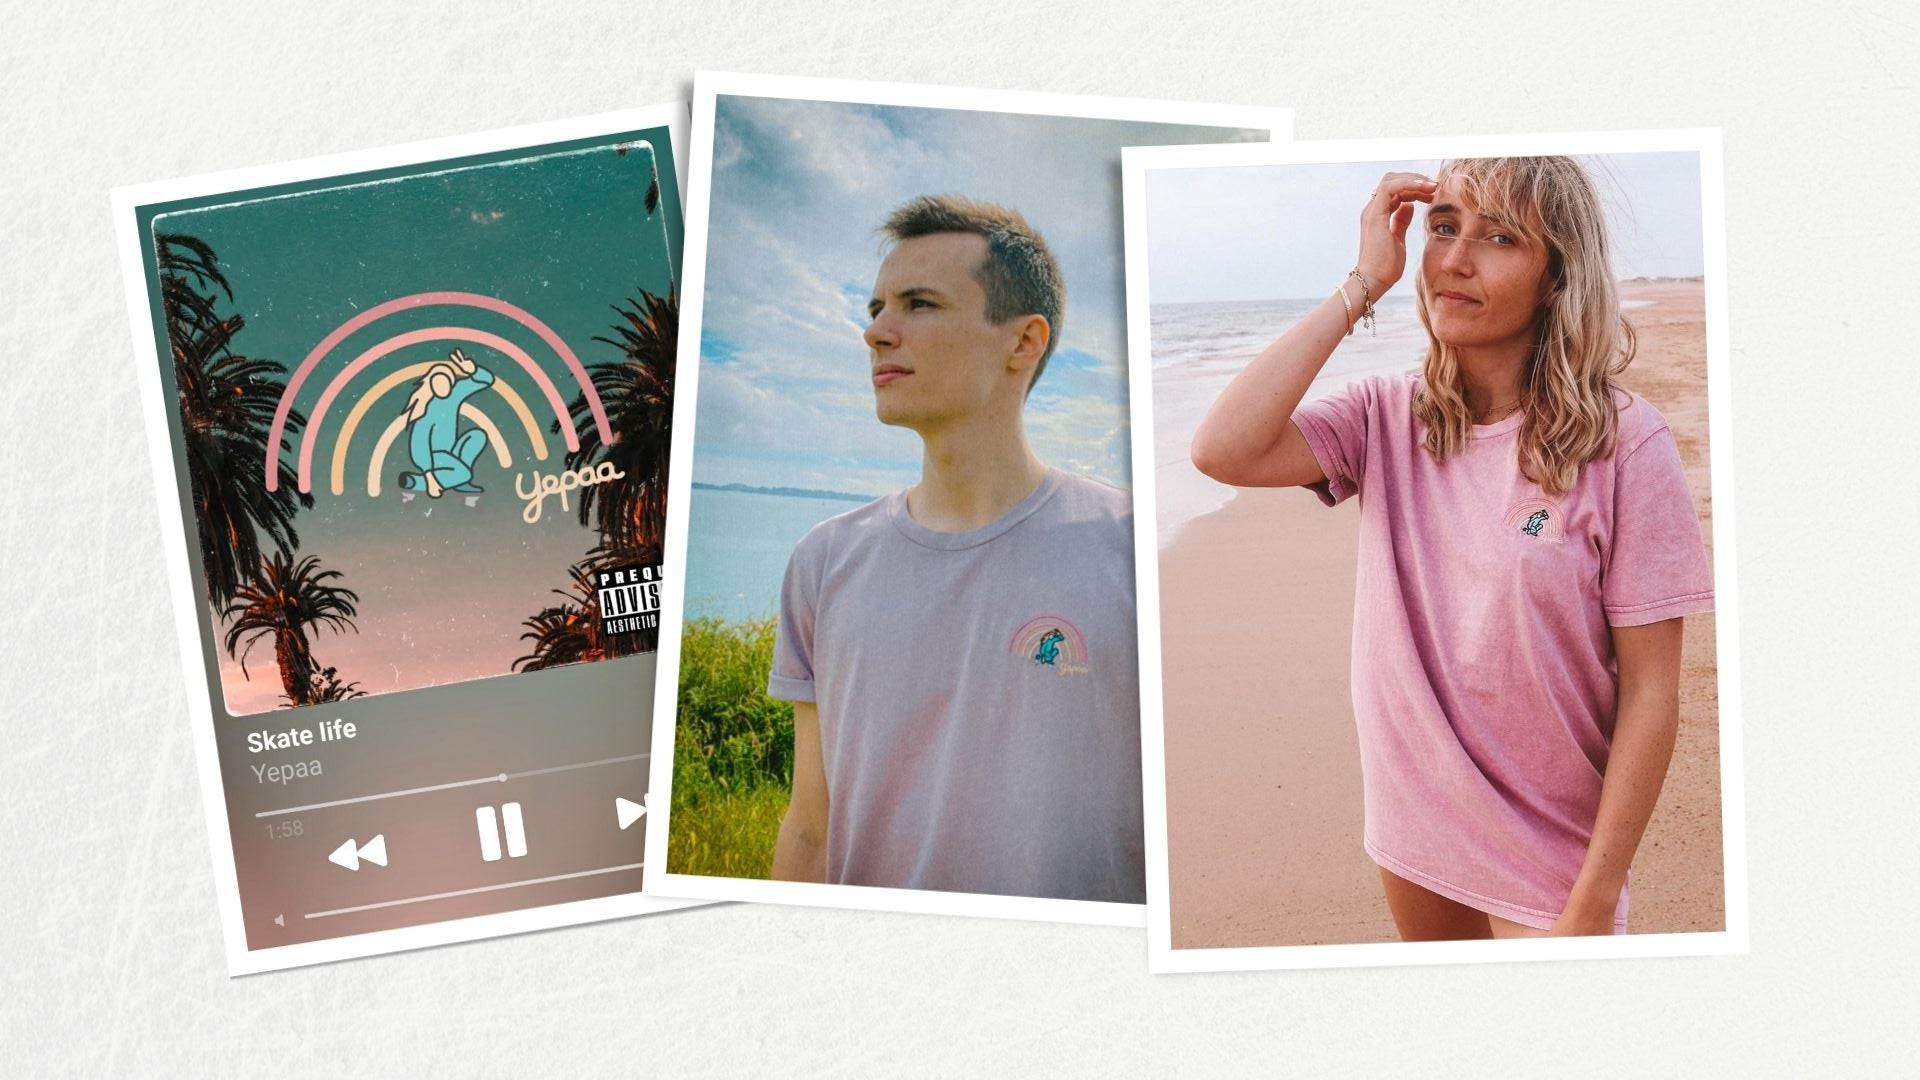 Skate life - Collection 2021 Yepaa, la mode durable française surfwear et skate wear - Collection Summer of love